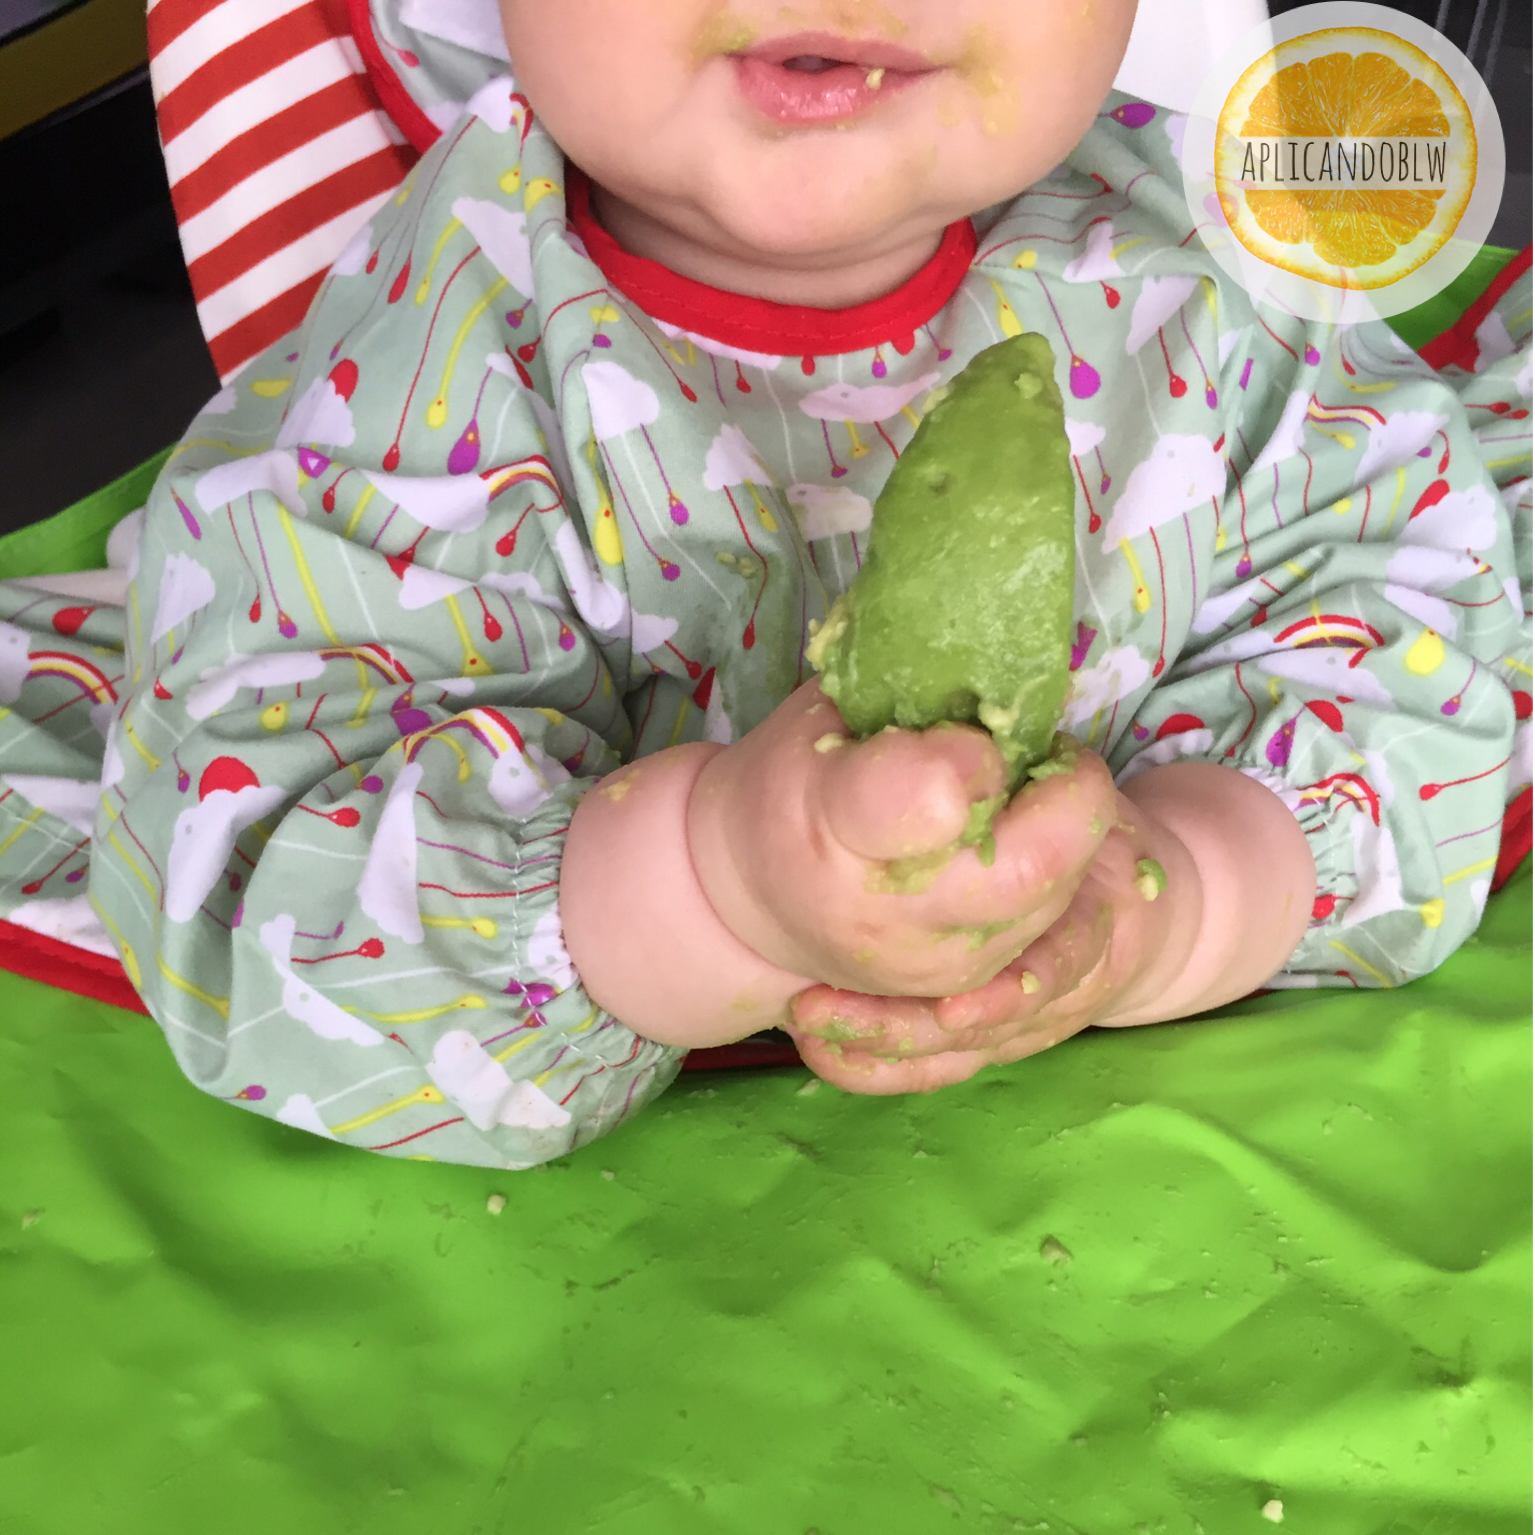 blw 6 meses - baby led weaning aguacate